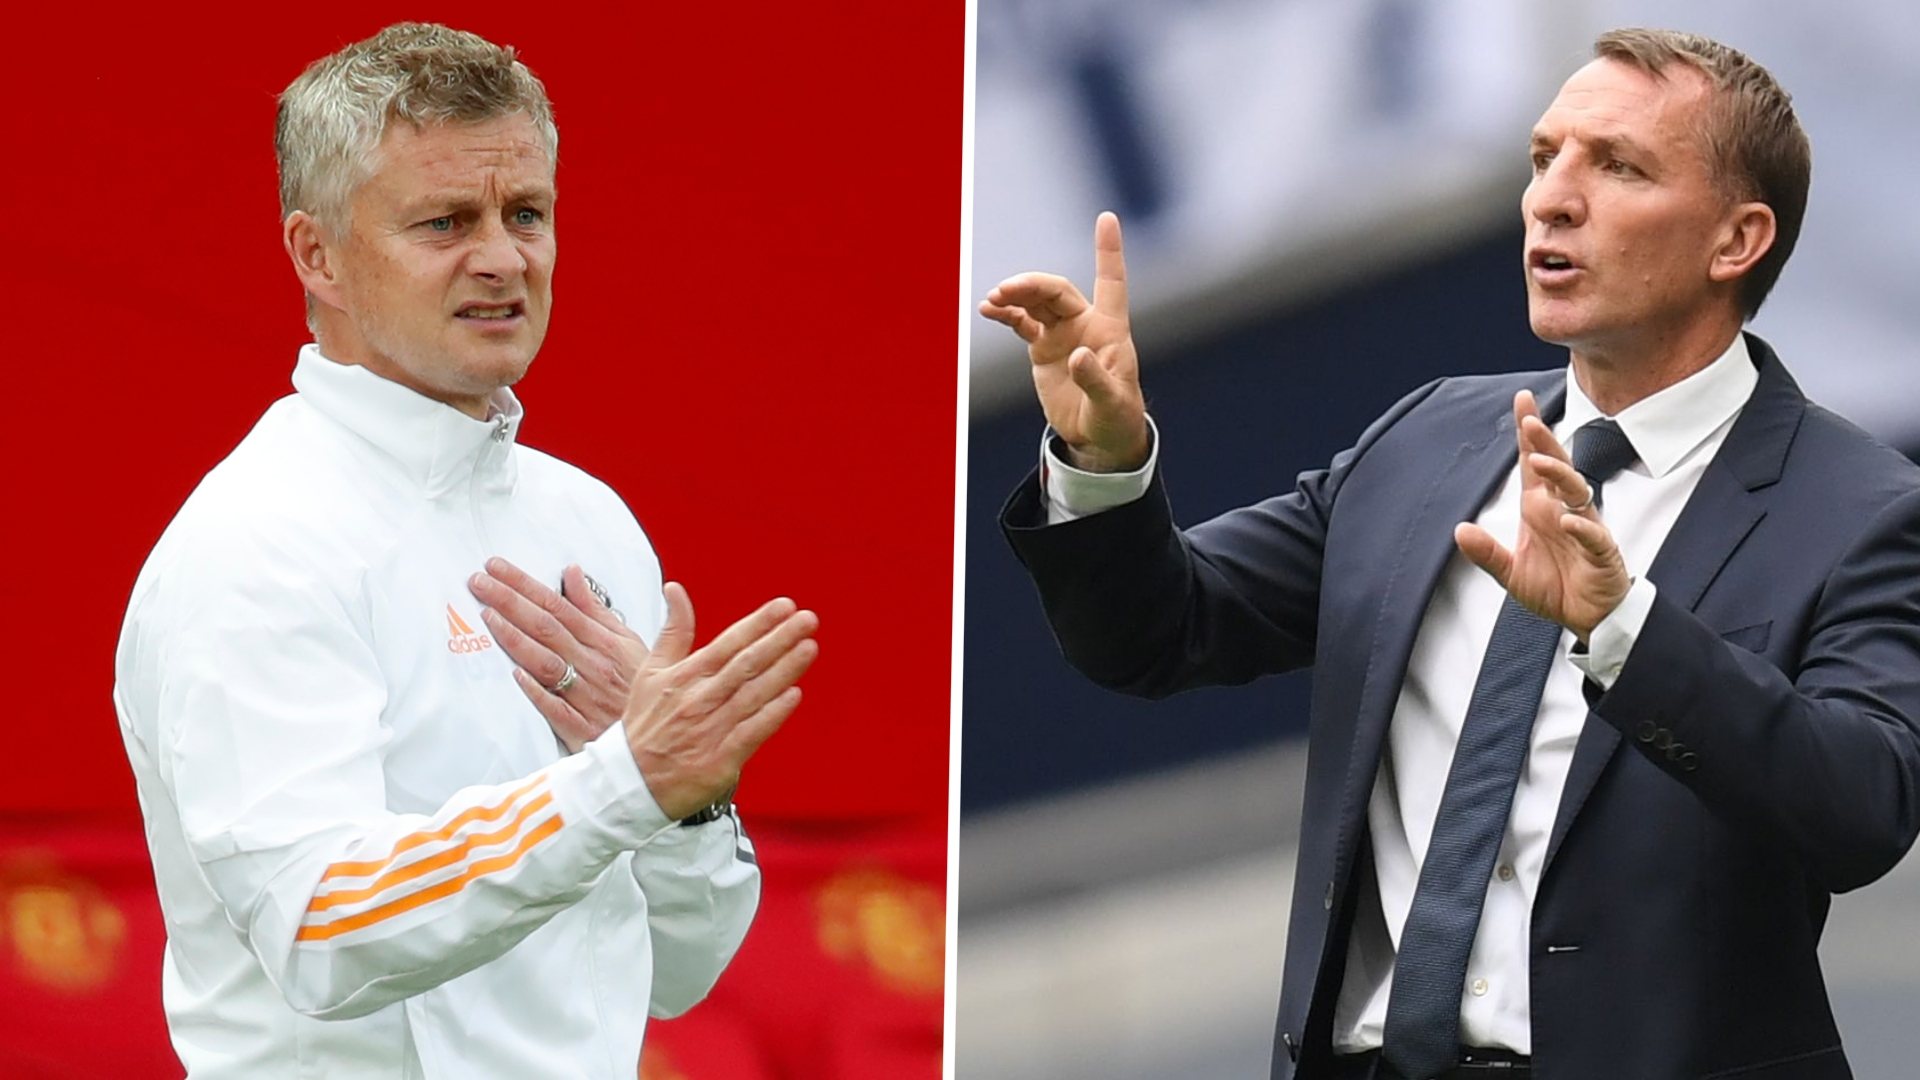 The £100 million match: Manchester United faces date with Champions League destiny 1